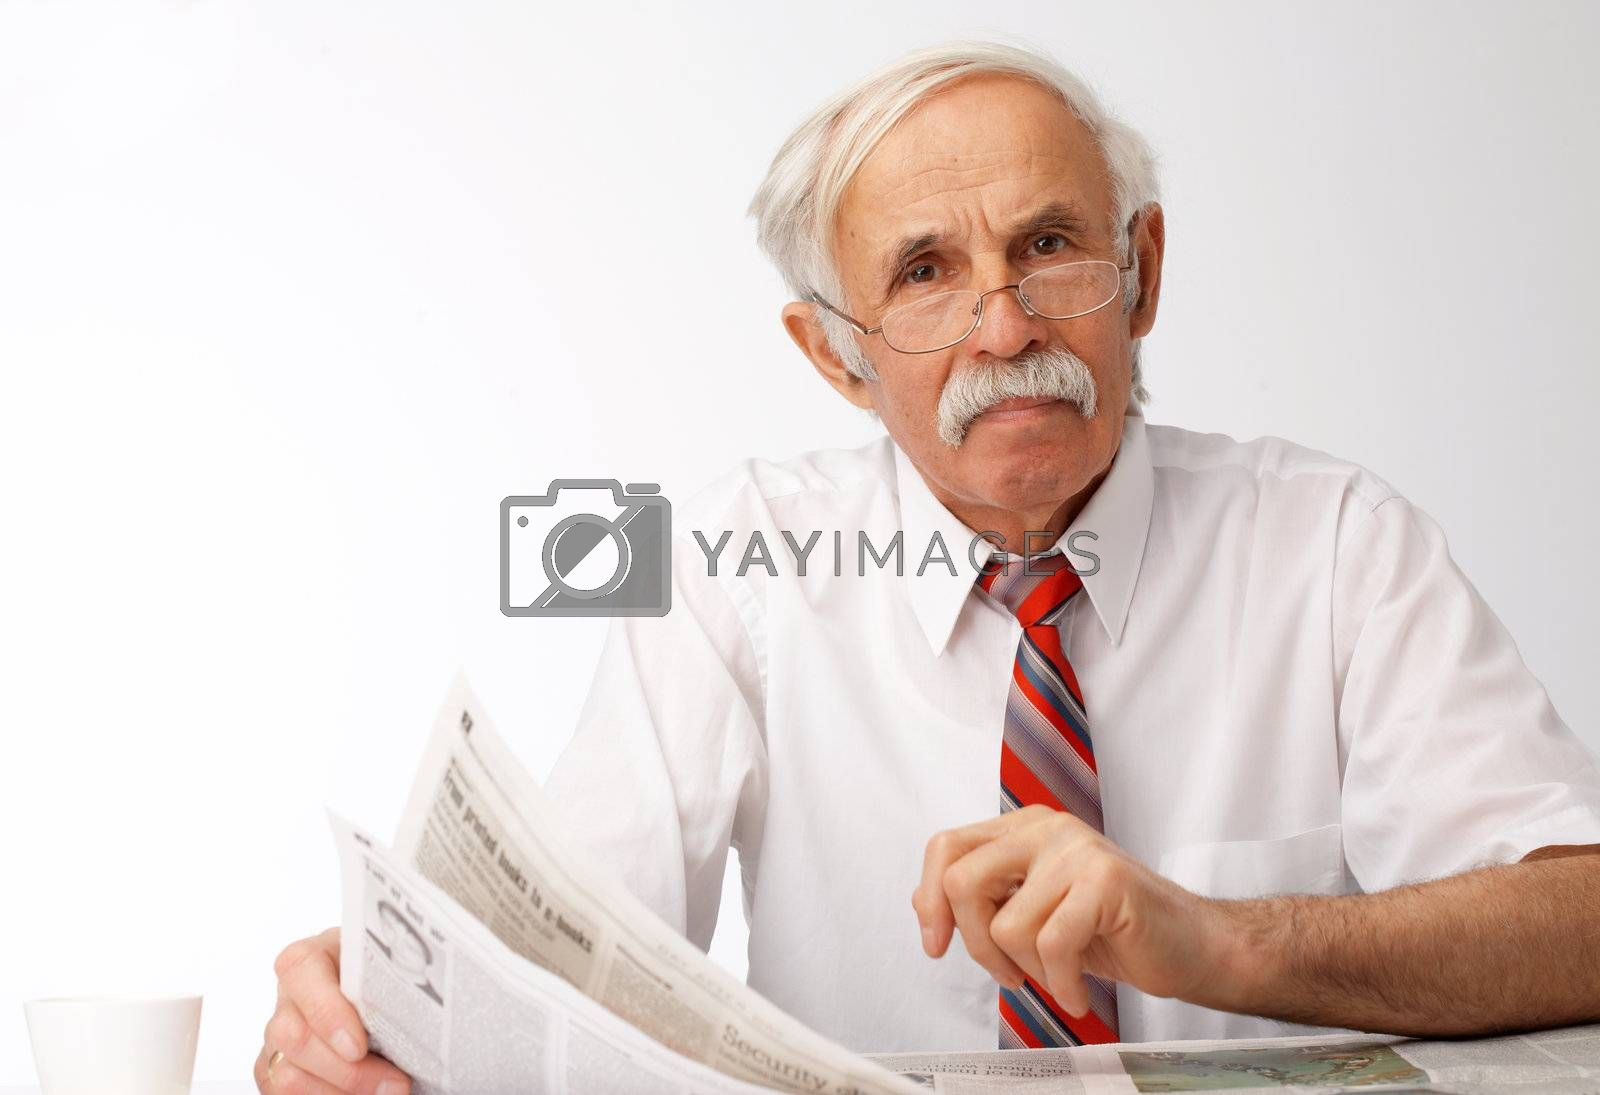 Portrait of an elder man holding an newspaper and looking at you.